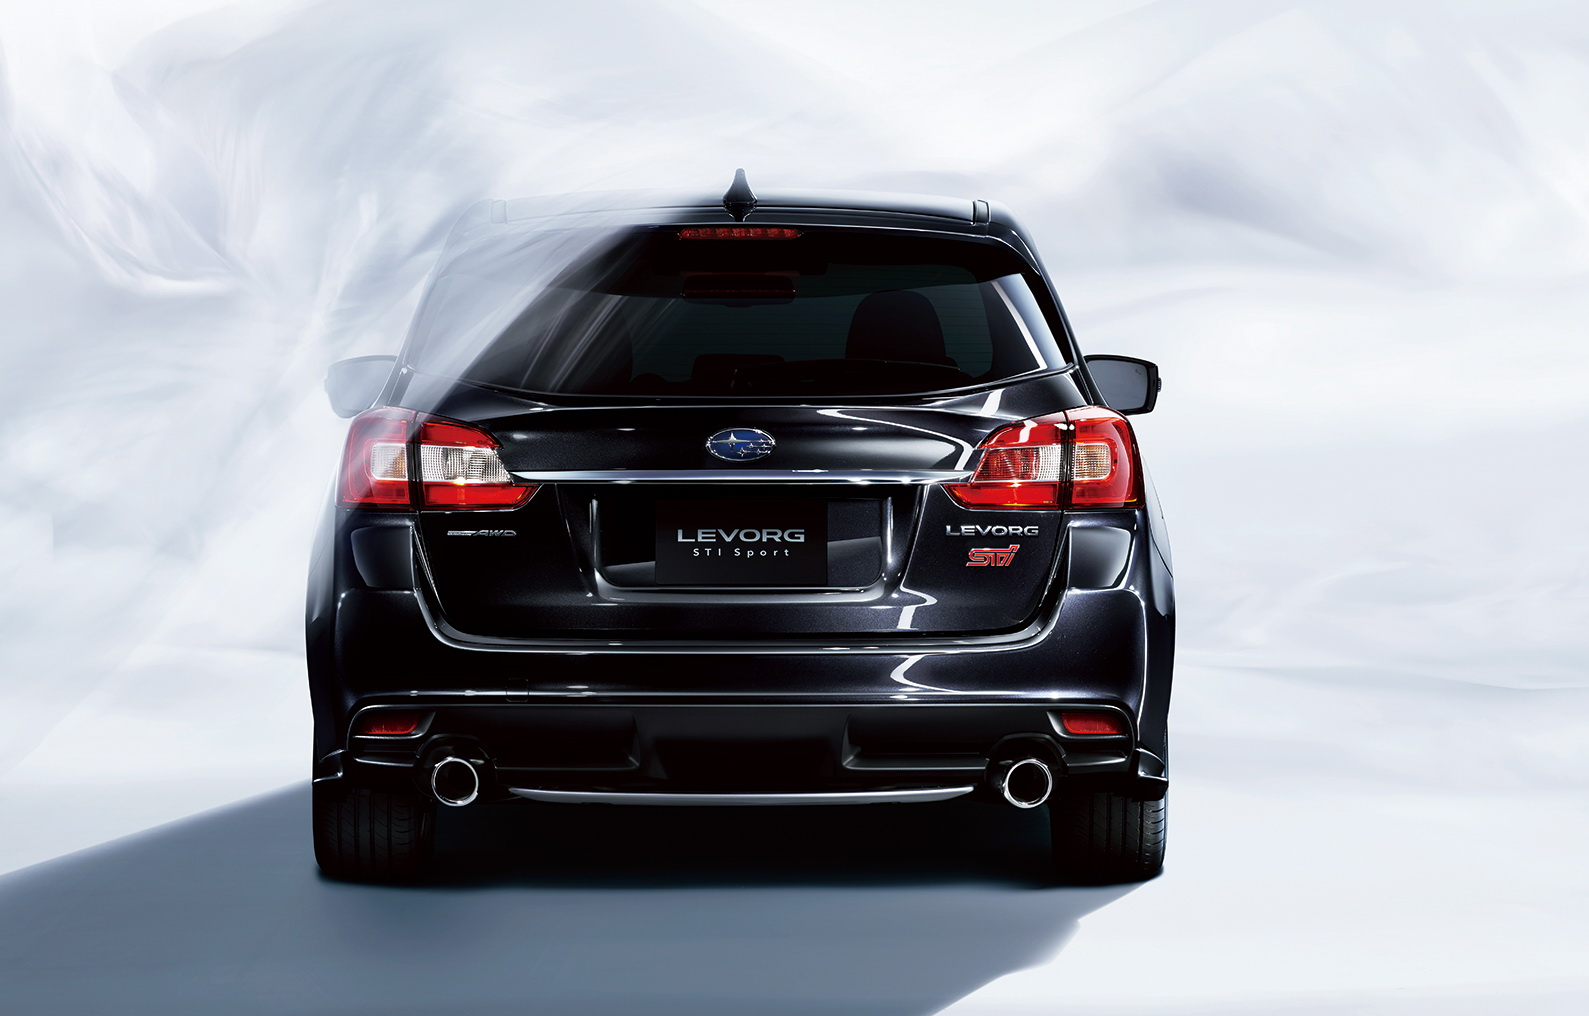 New Subaru Levorg Sti Sport Wagon Is Kind Of A Bummer